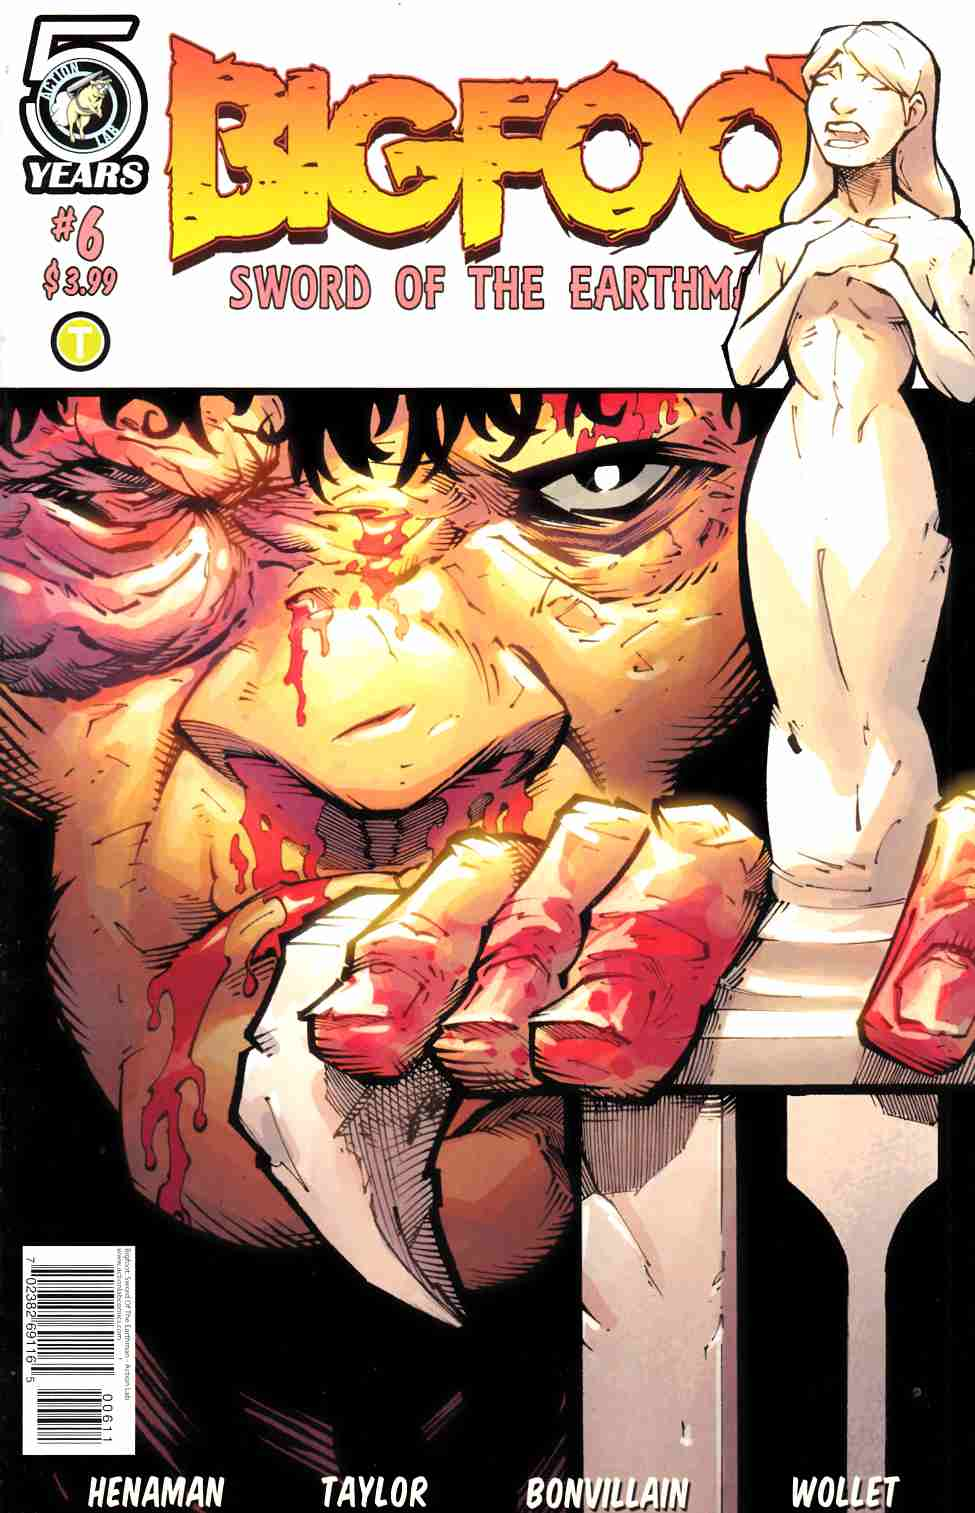 Bigfoot Sword of the Earthman #6 Cover A [Action Lab Comic] THUMBNAIL